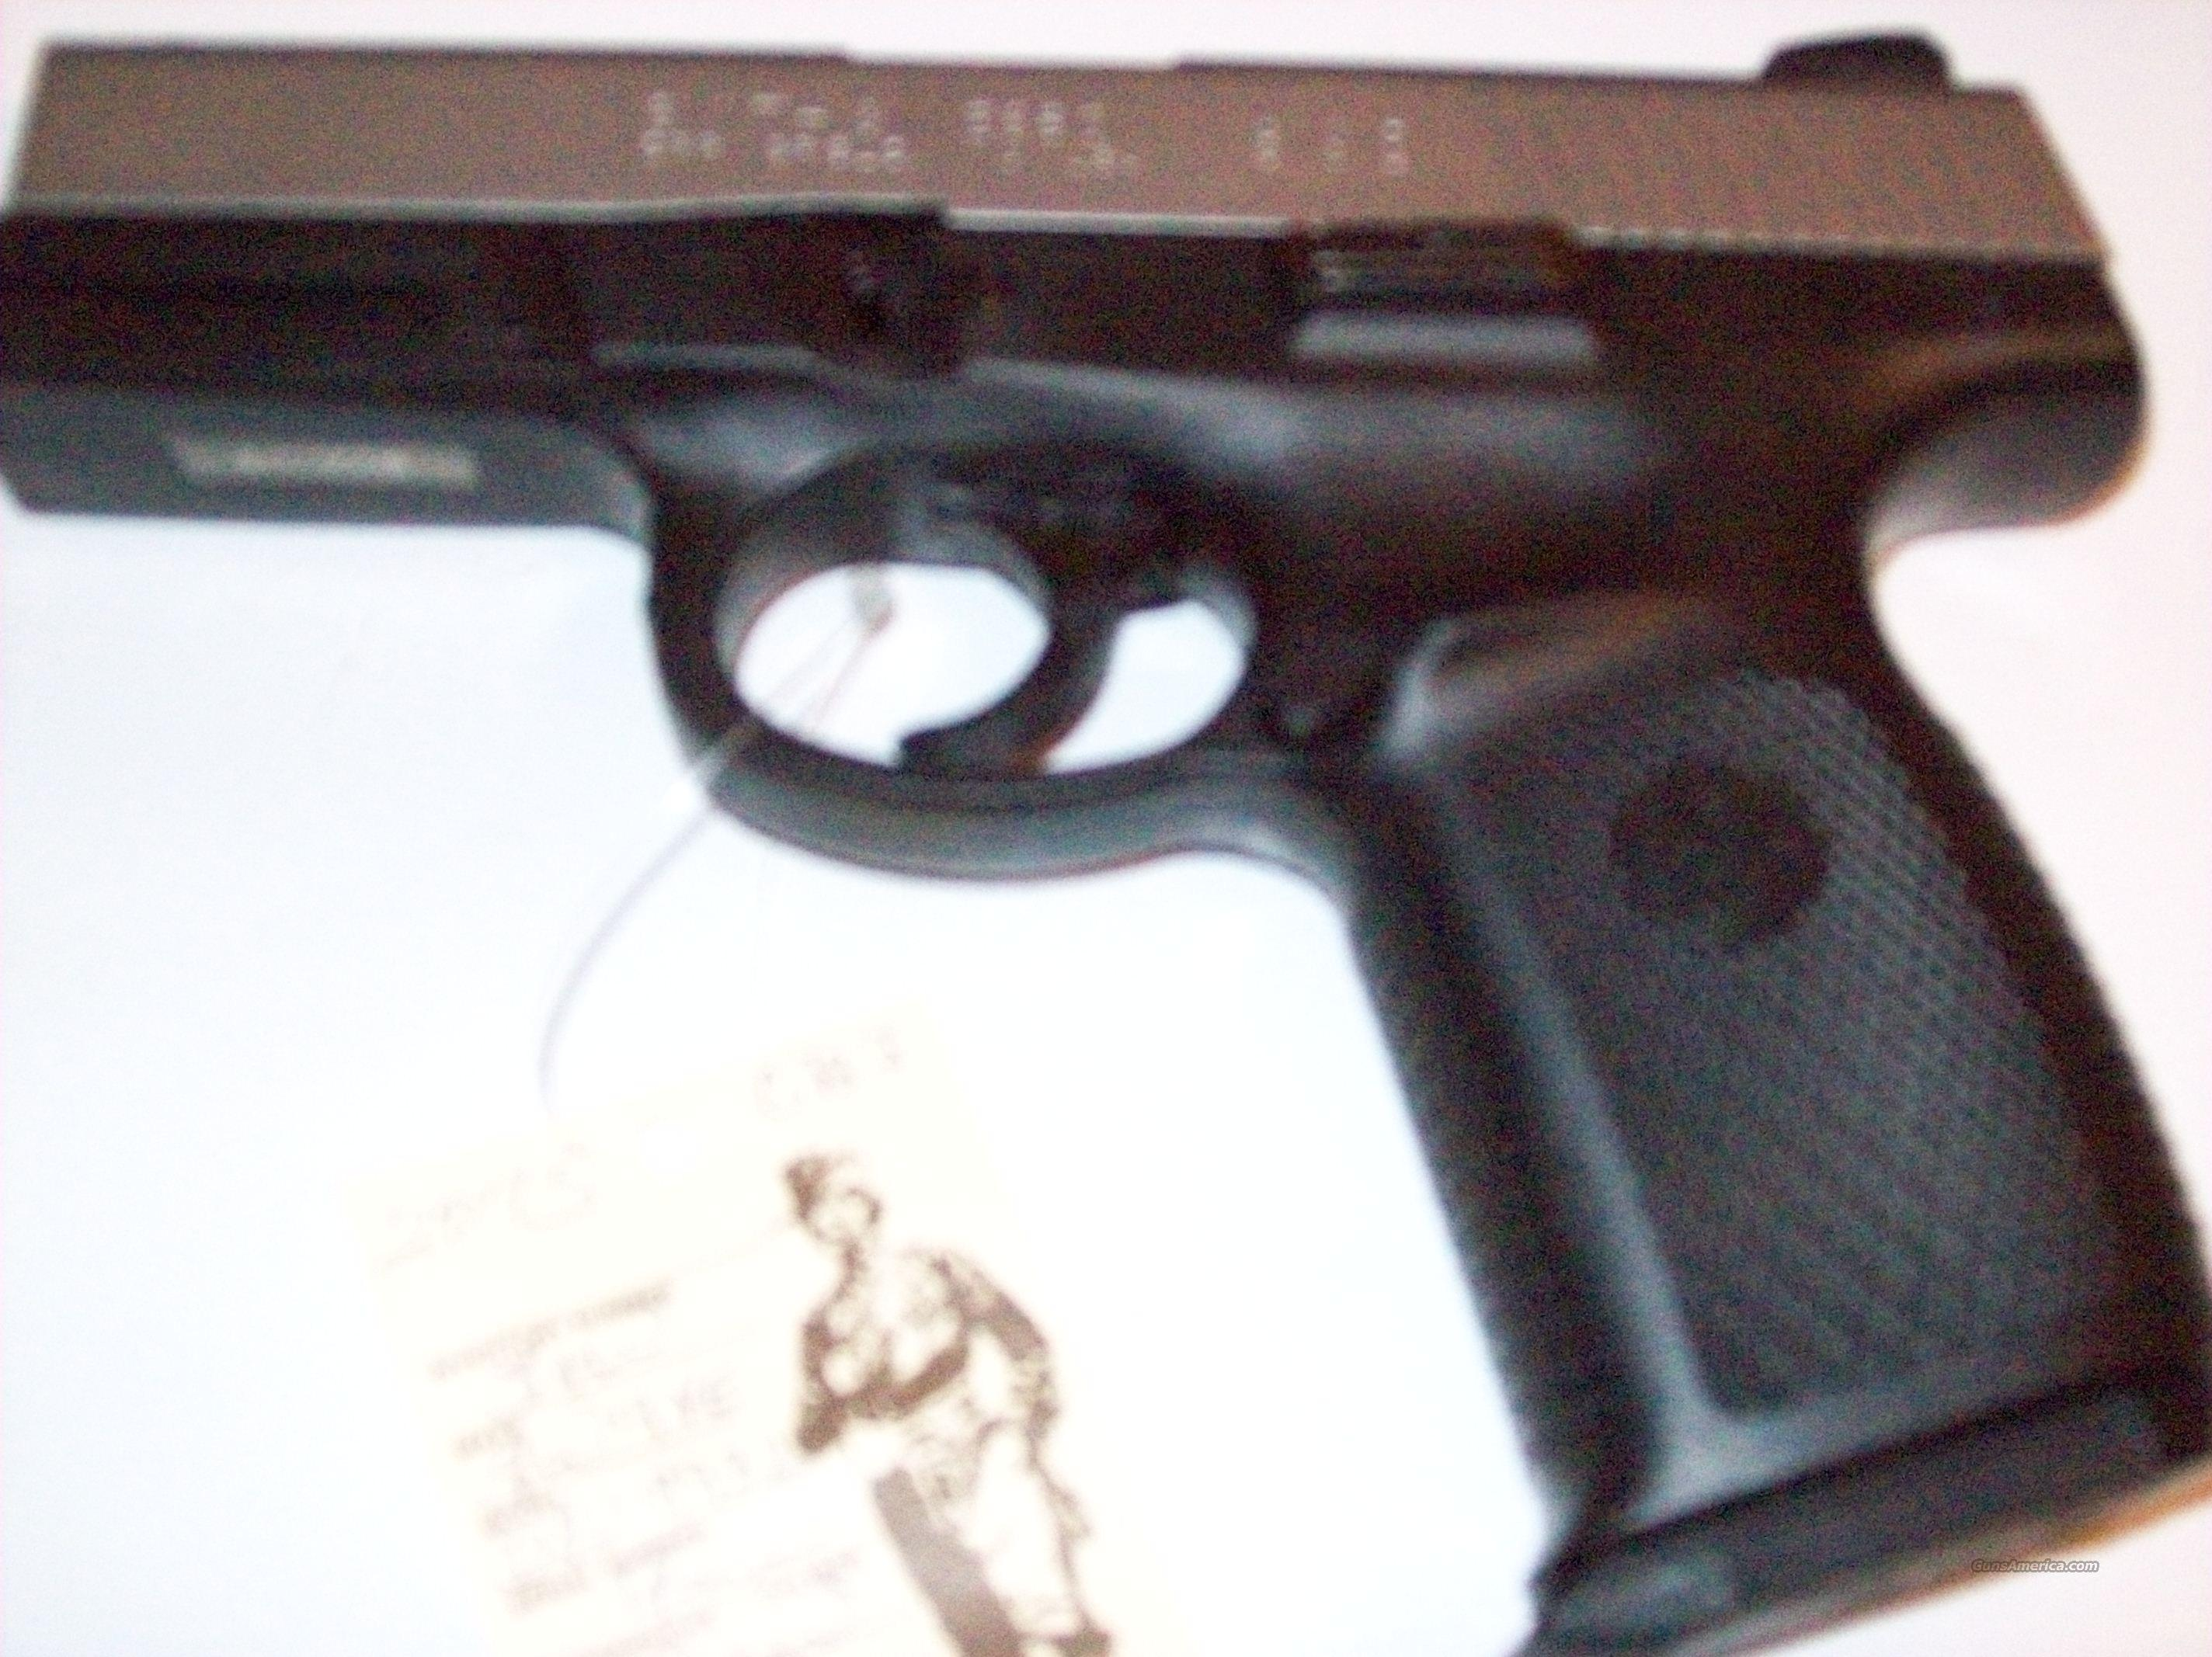 Smith & Wesson SW9VE 9mm Pistol  Guns > Pistols > Smith & Wesson Pistols - Autos > Polymer Frame